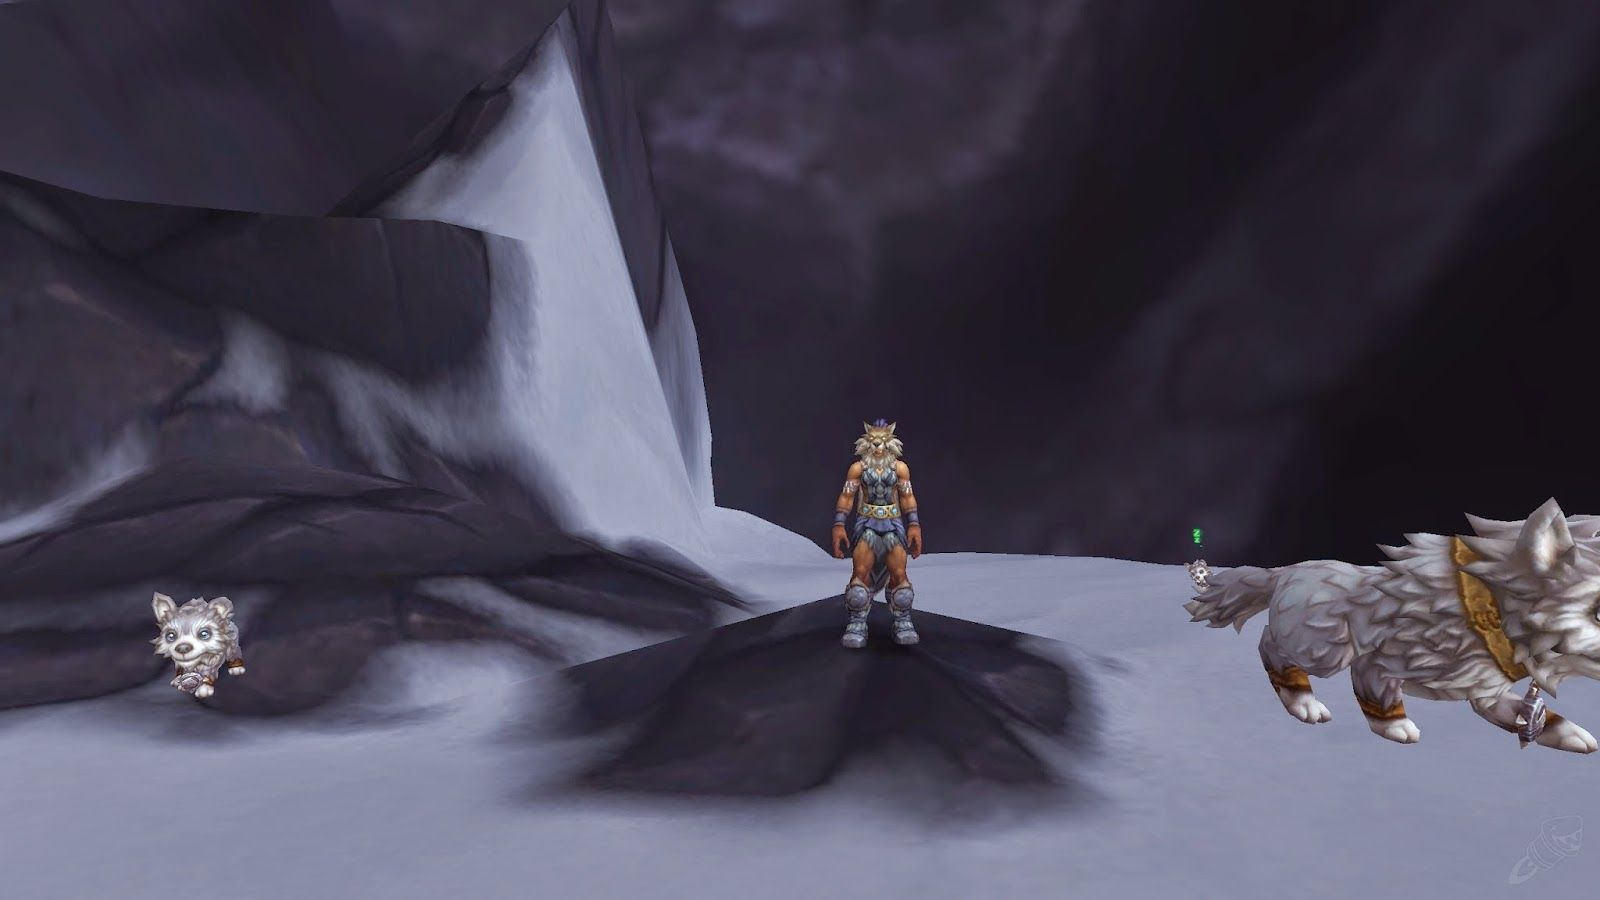 World Of Warcraft Strategies Draenor Pet Battle Daily Trainers Carry Any Lvl 1 Pet World Of Warcraft Battle Carry On